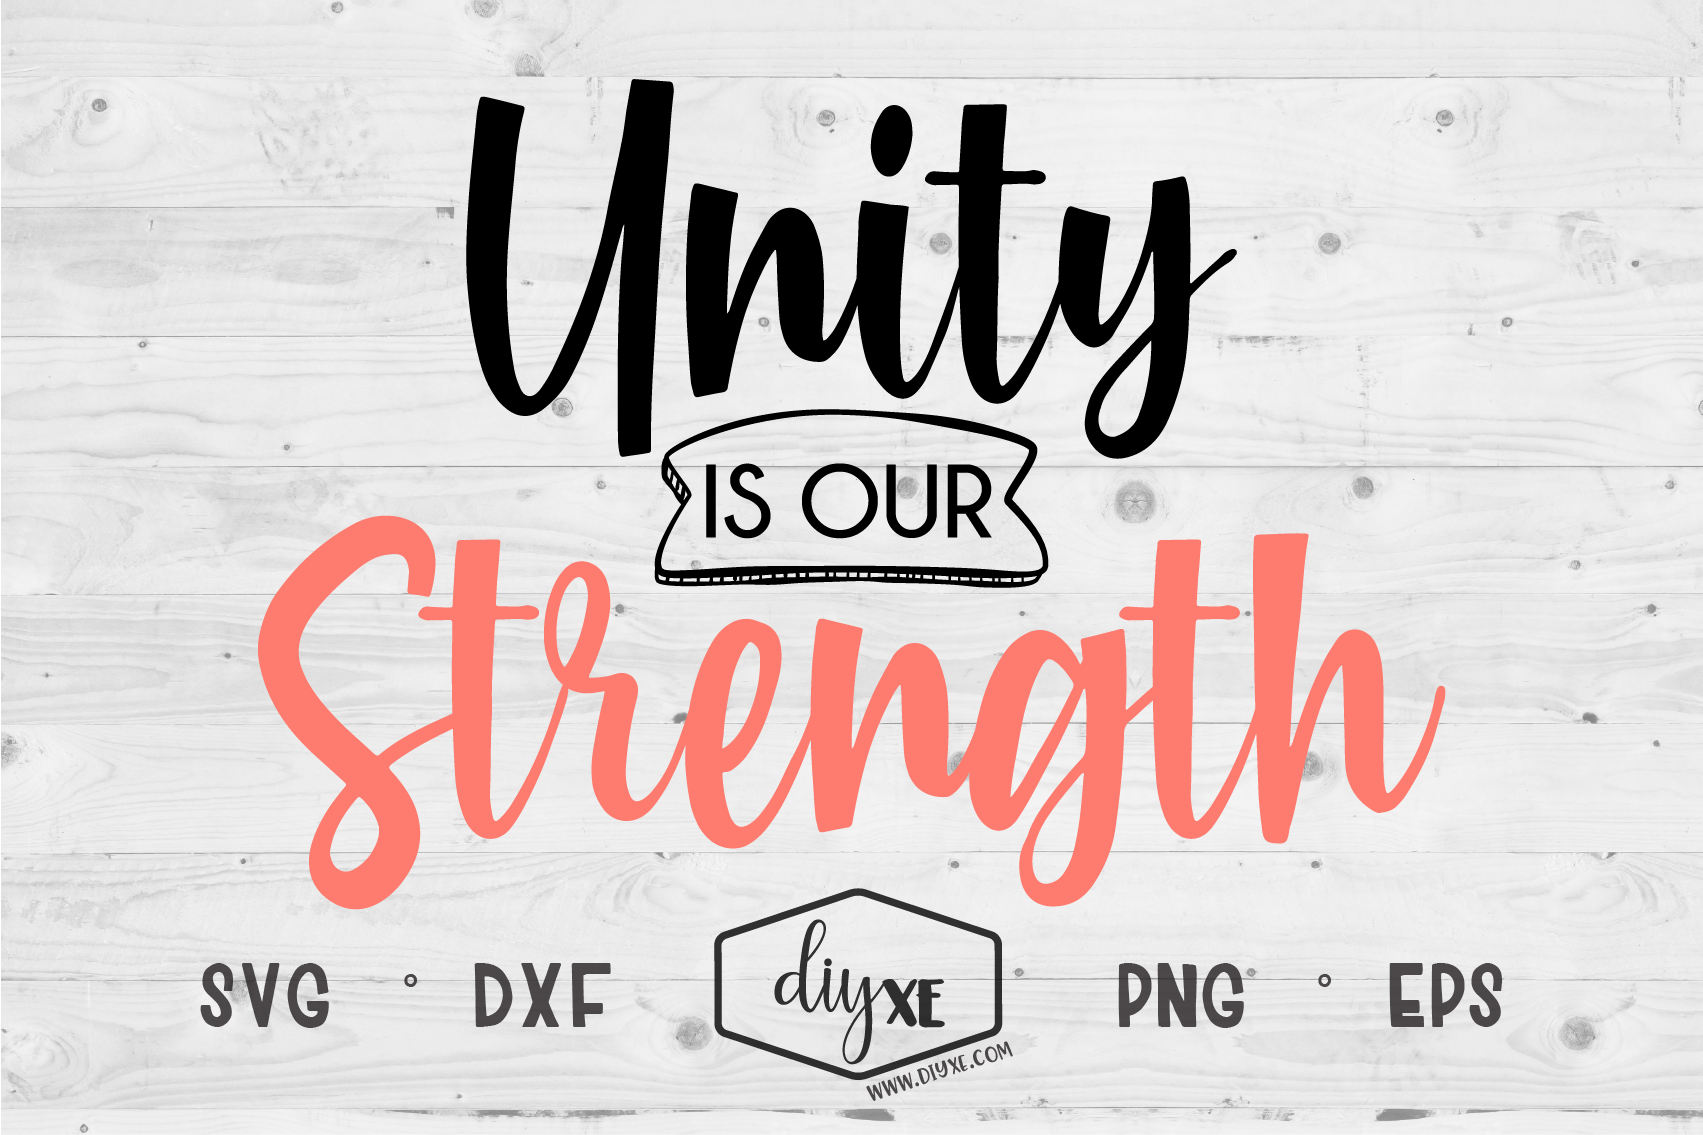 Unity Is Our Strength An Inspirational Svg Cut File By Diyxe